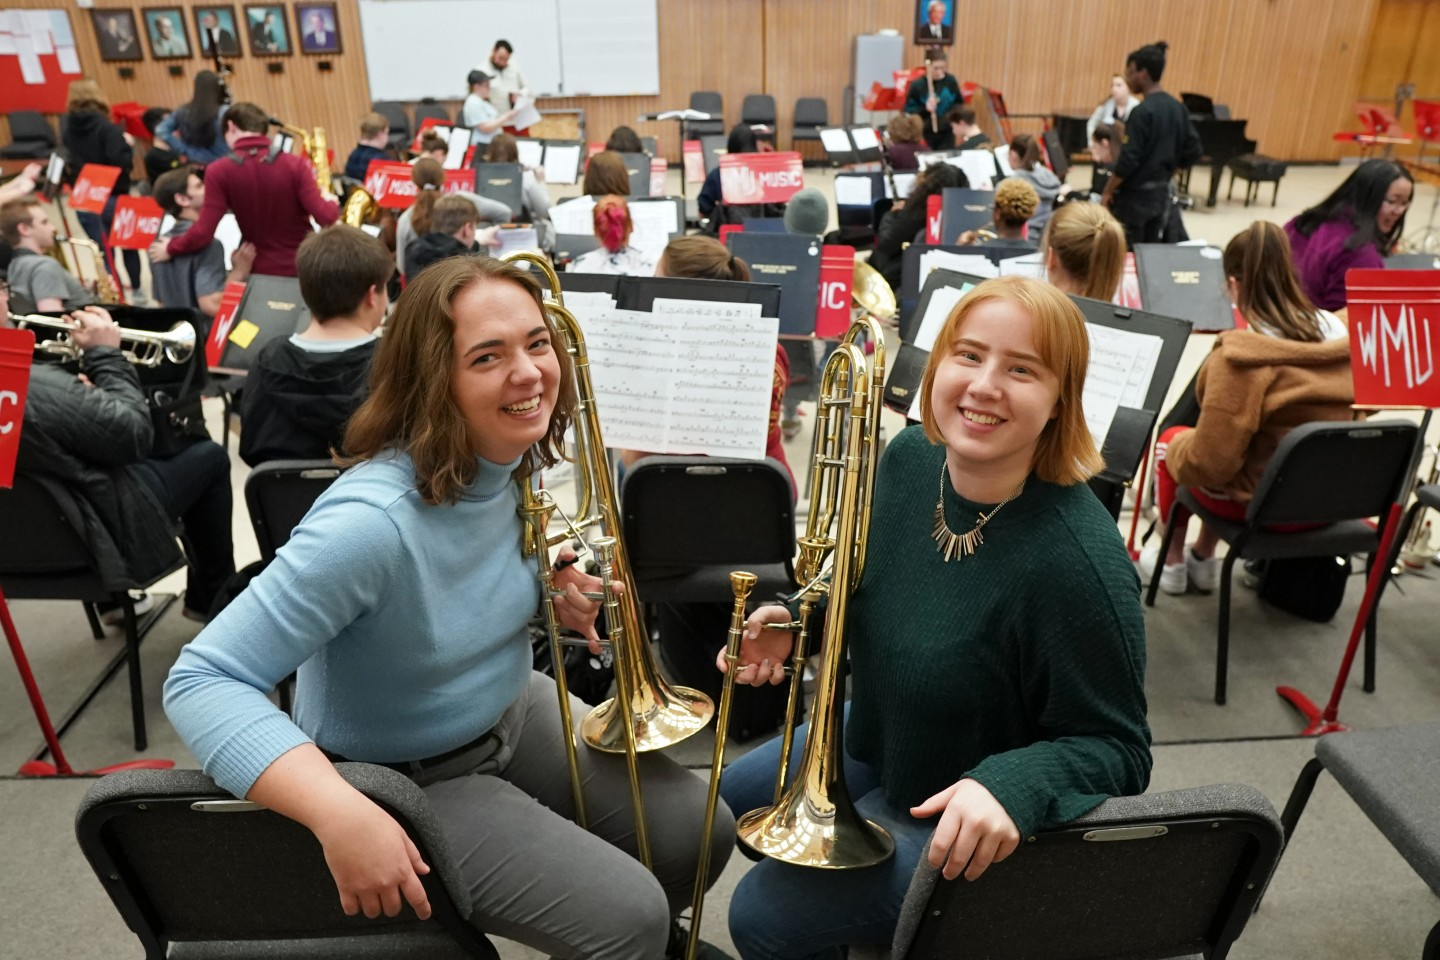 Alyson Johnson and Alayna O'Connell pose for a picture with their trombones.